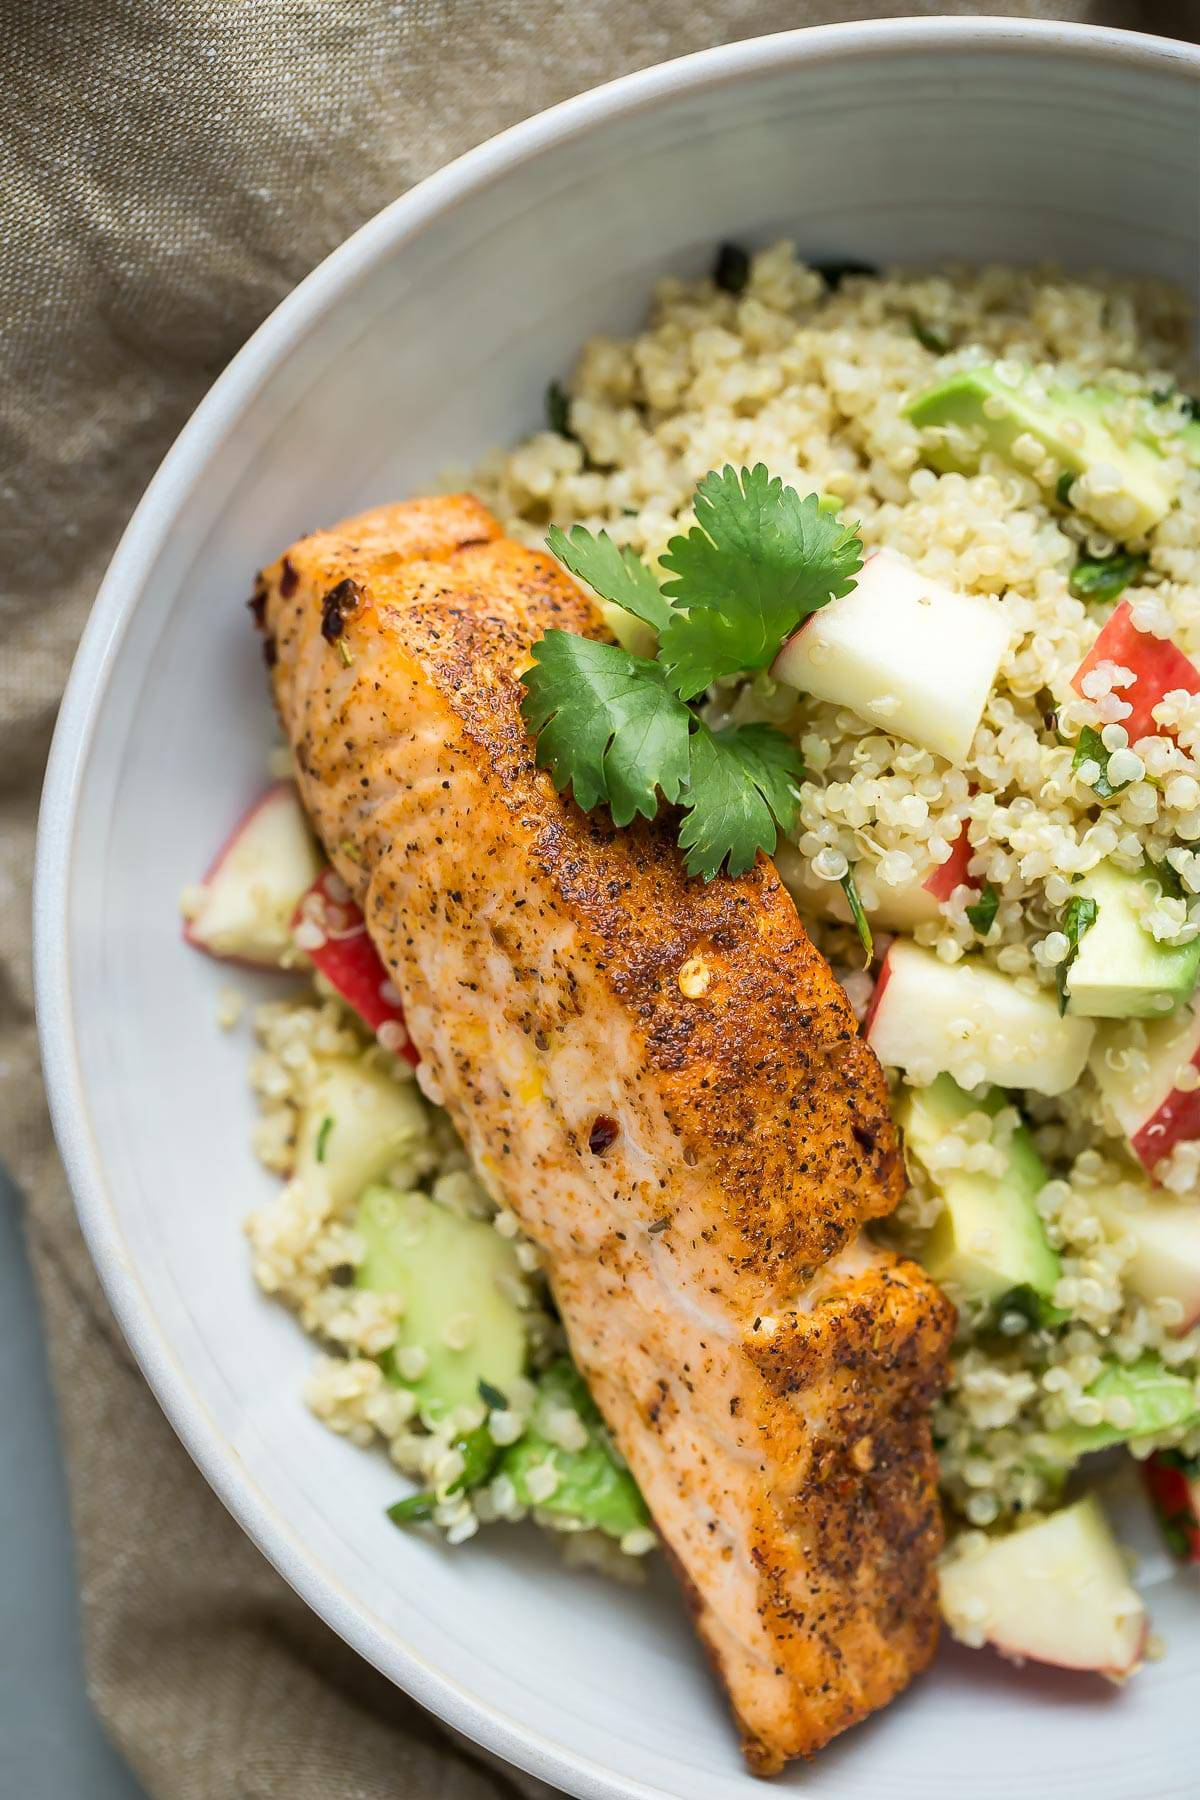 Healthy salmon with quinoa, apples and avocado, dressed with a fresh herb vinaigrette.